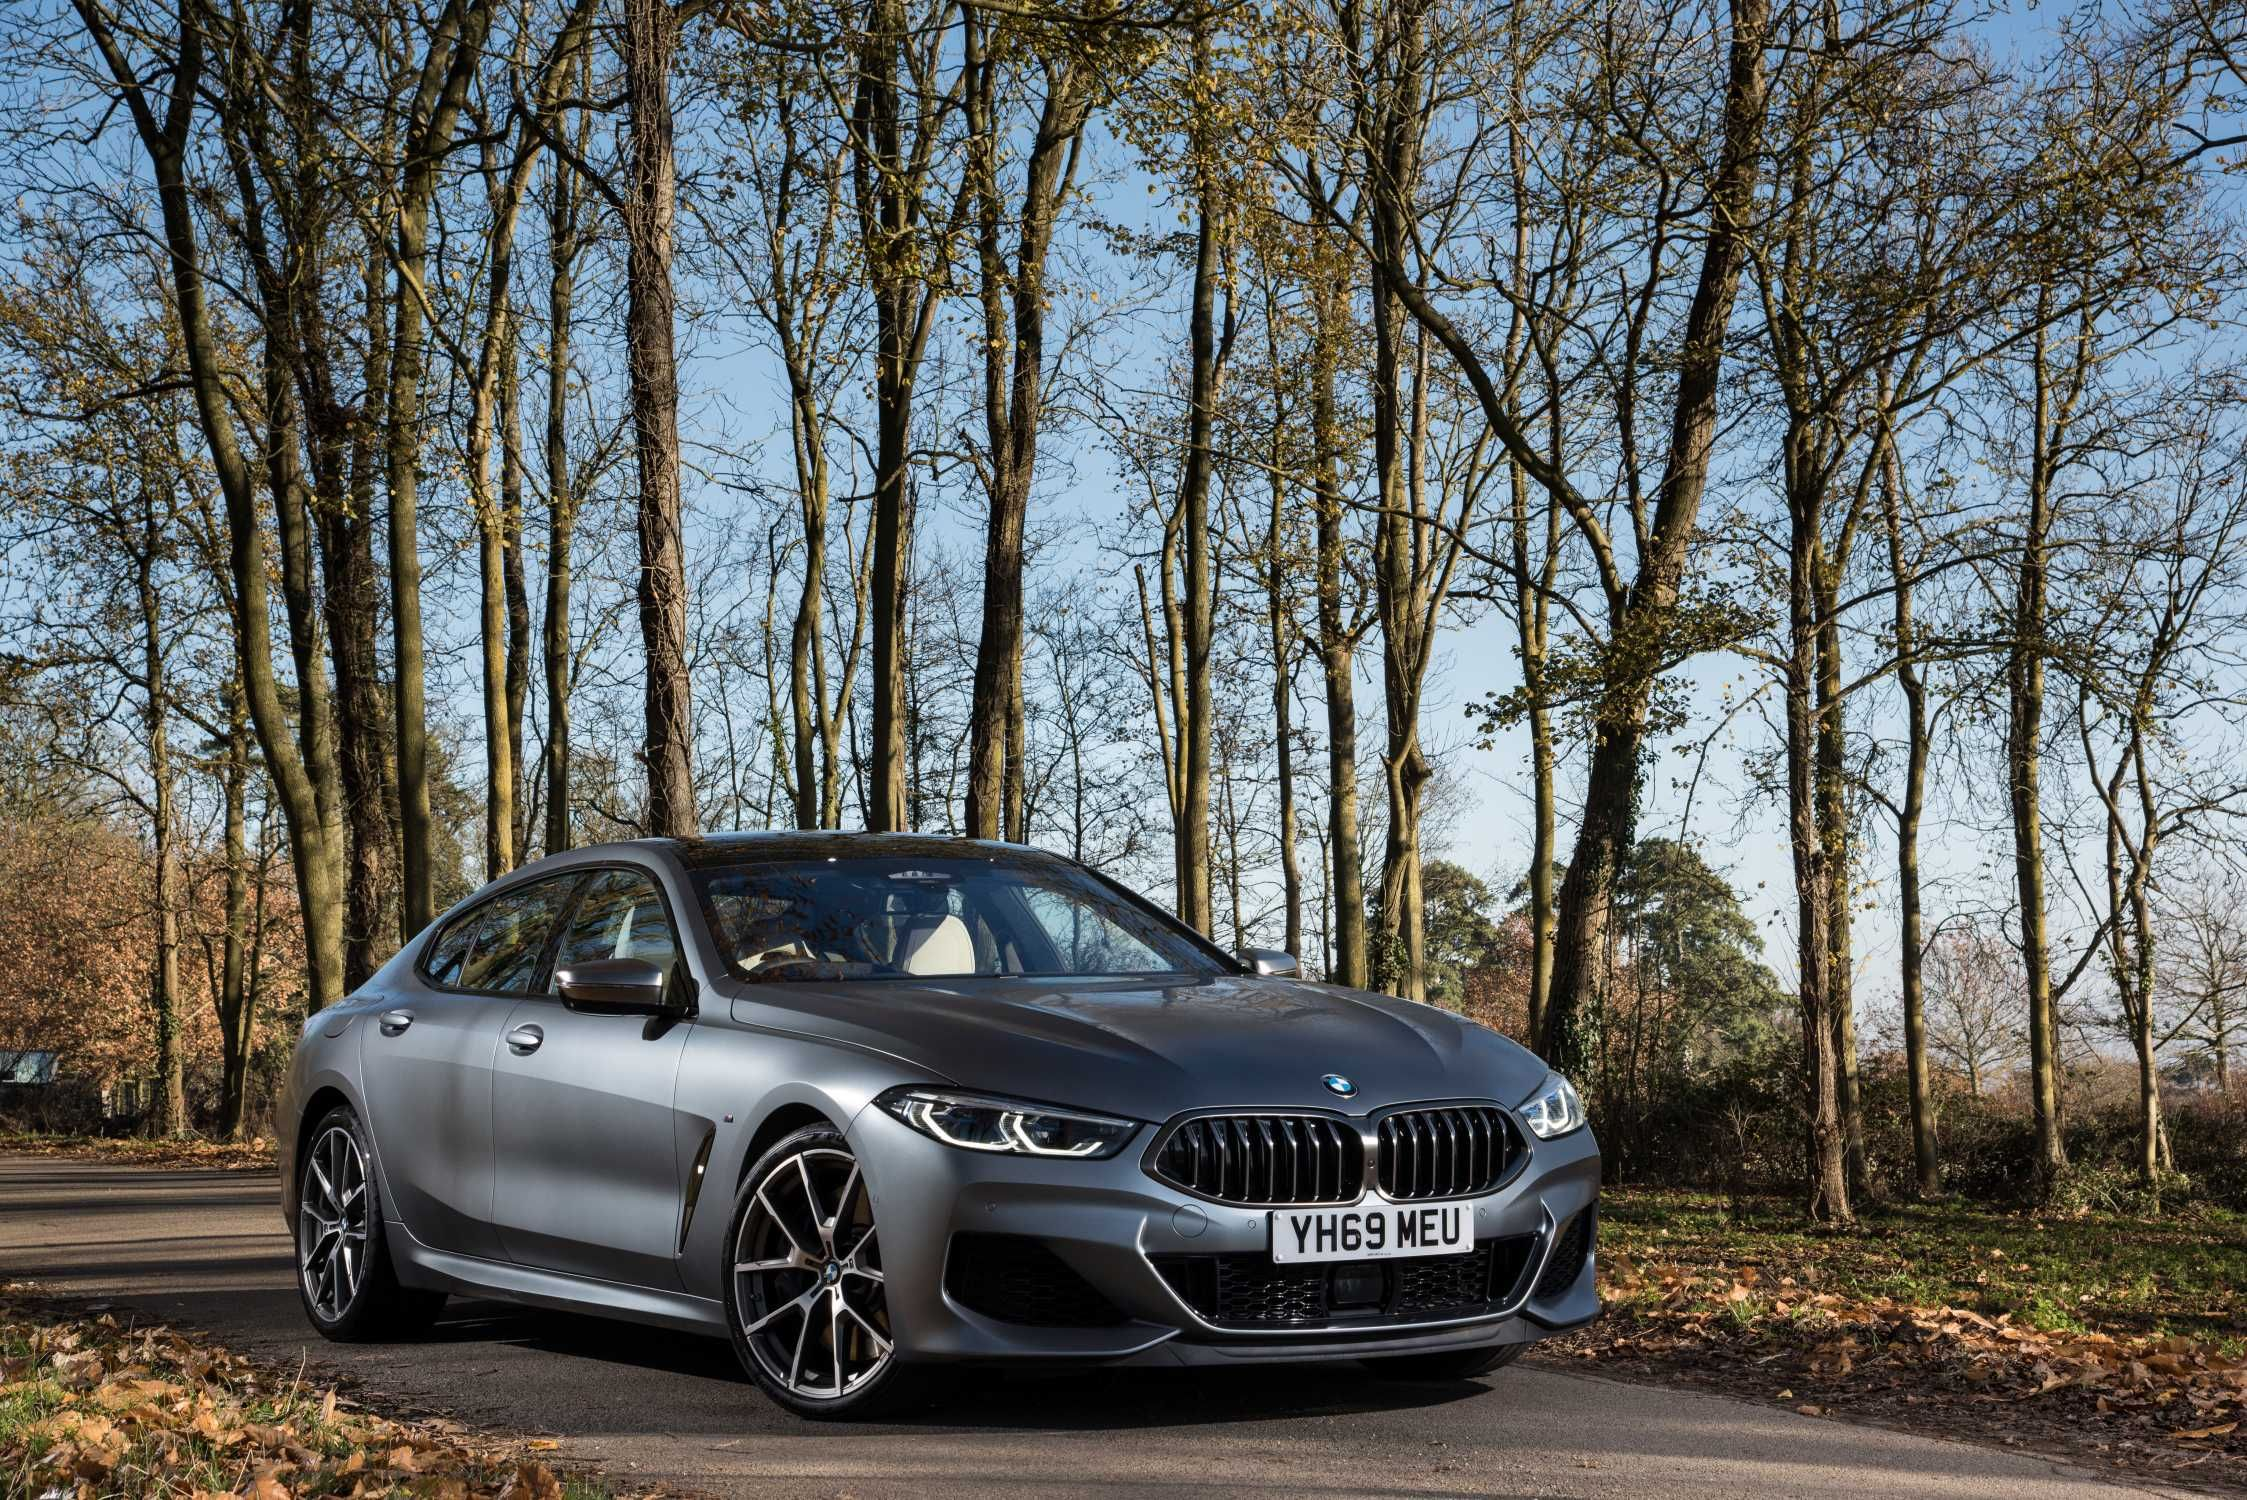 50 Bmw 8 Series Gran Coupe Side View In 2020 Bmw New Bmw Gran Coupe